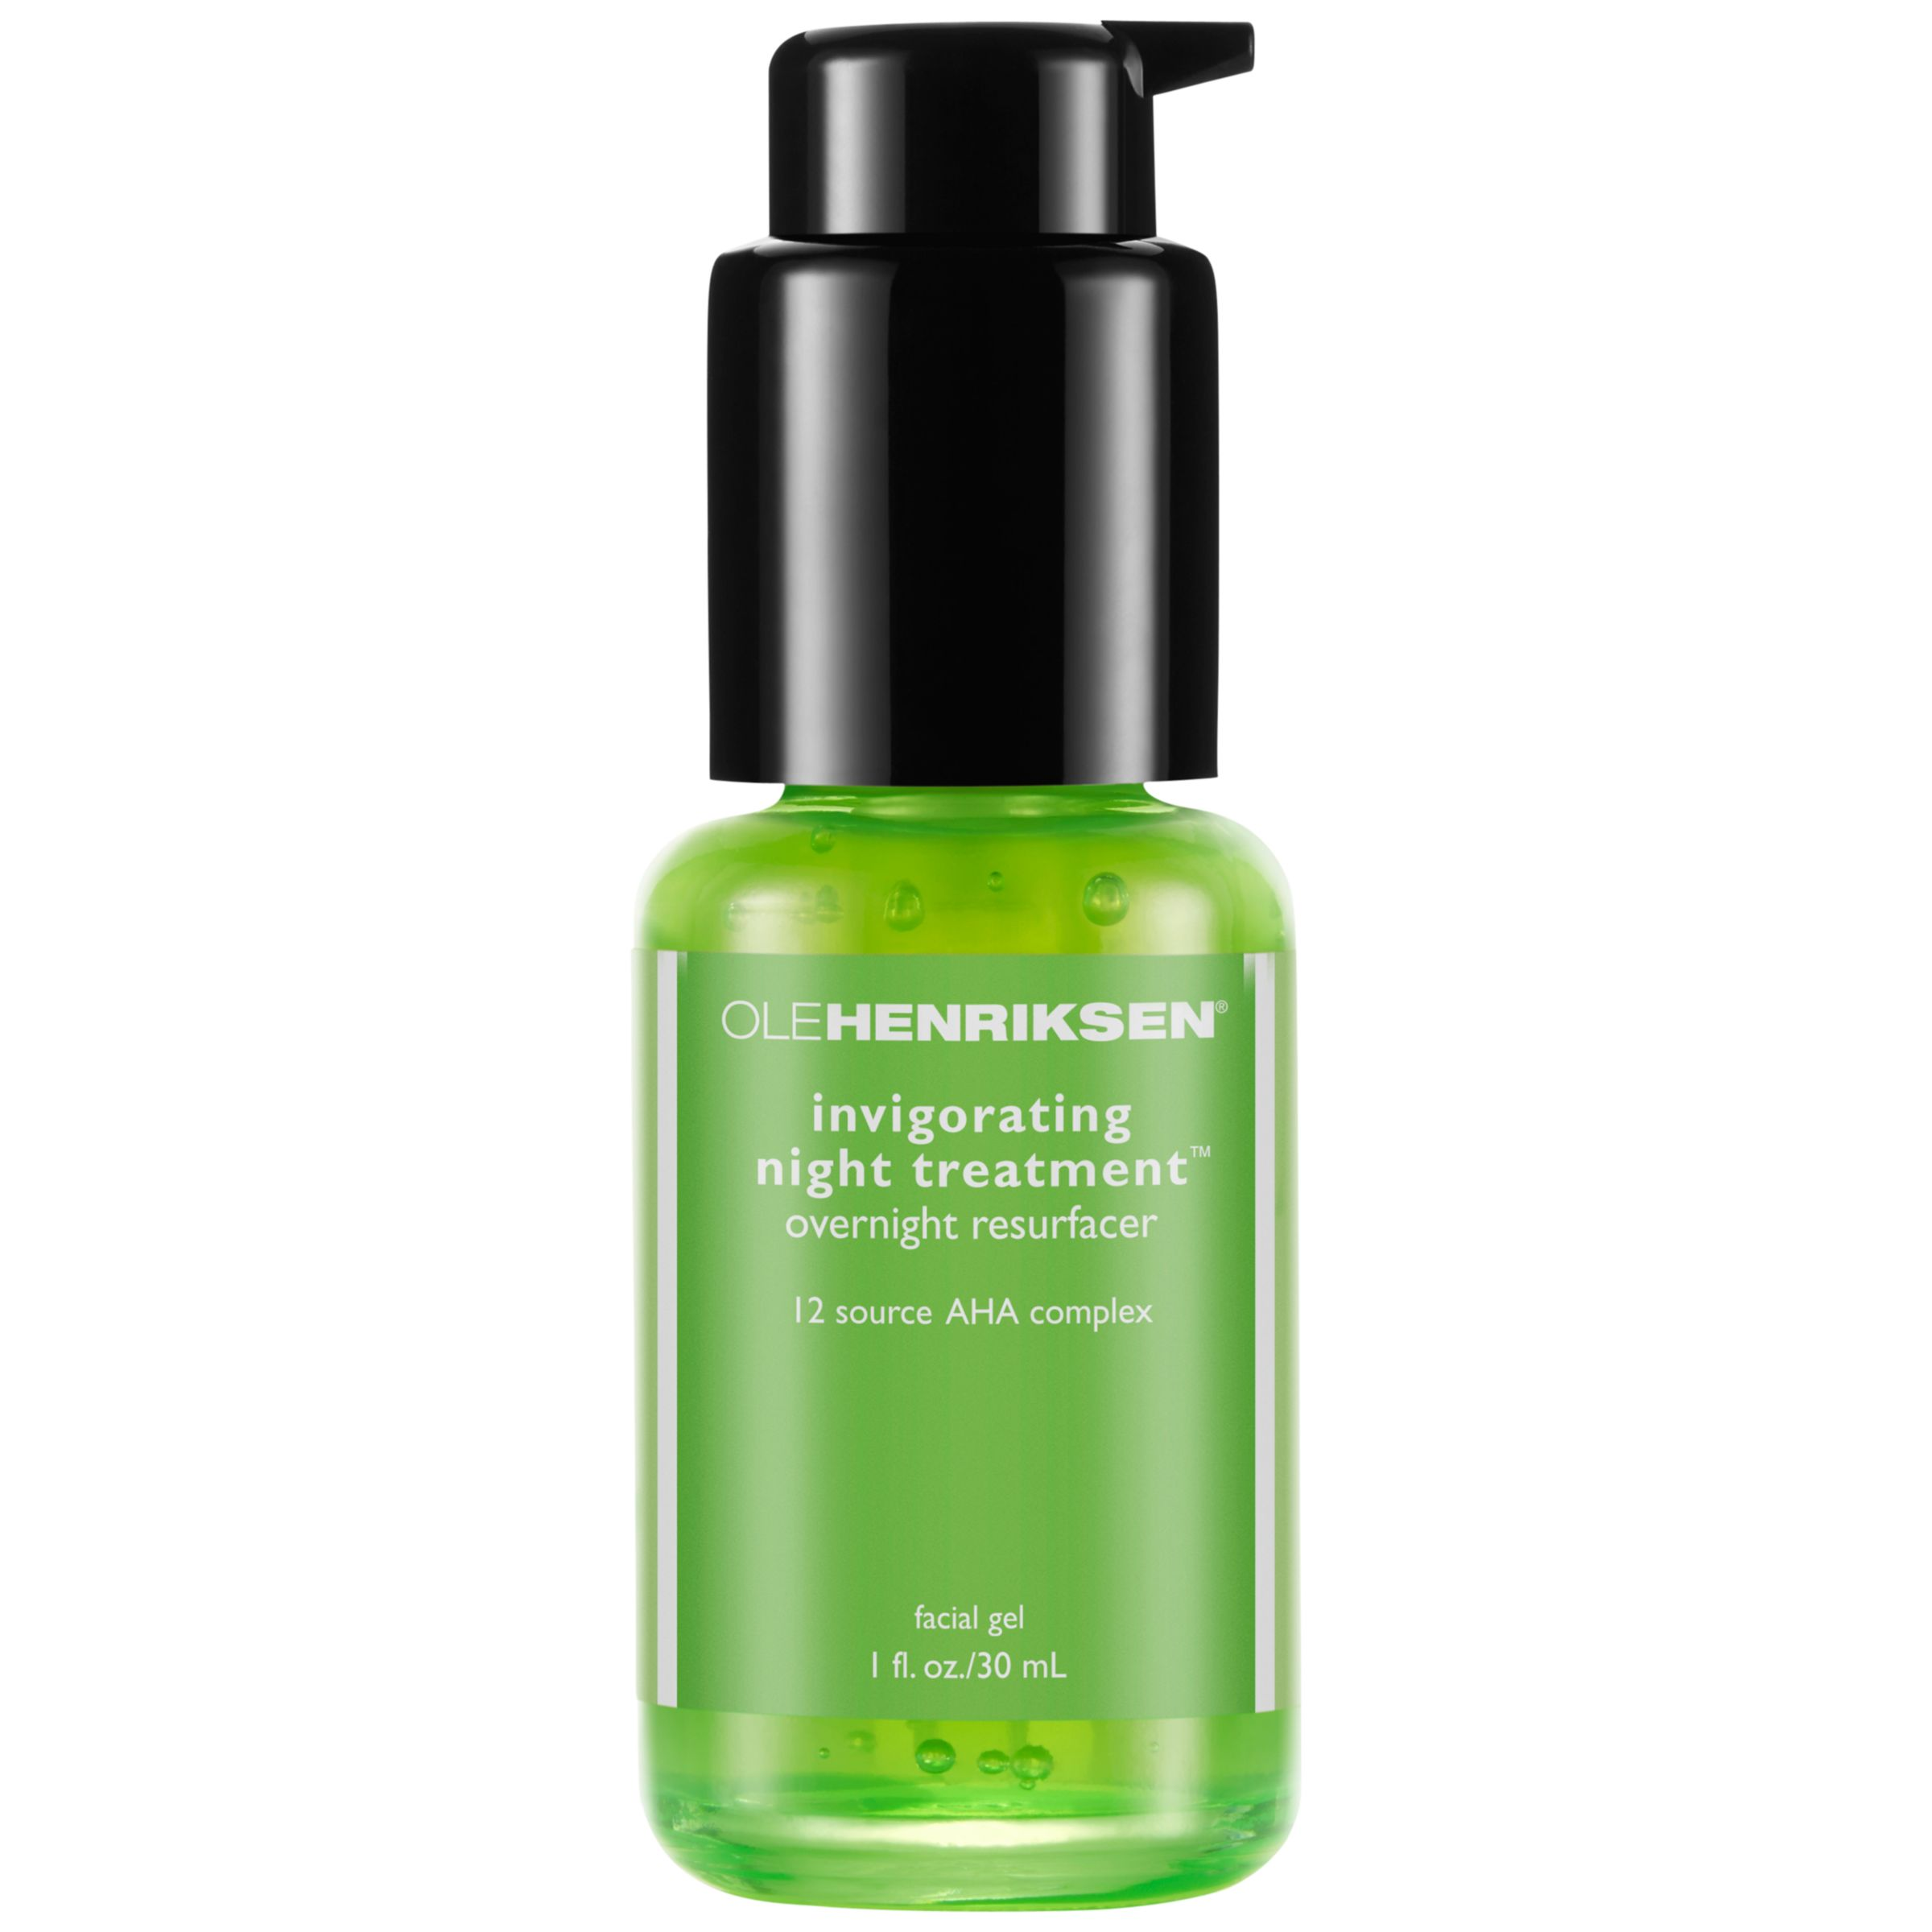 OLEHENRIKSEN OLEHENRIKSEN Invigorating Night Treatment, 50g